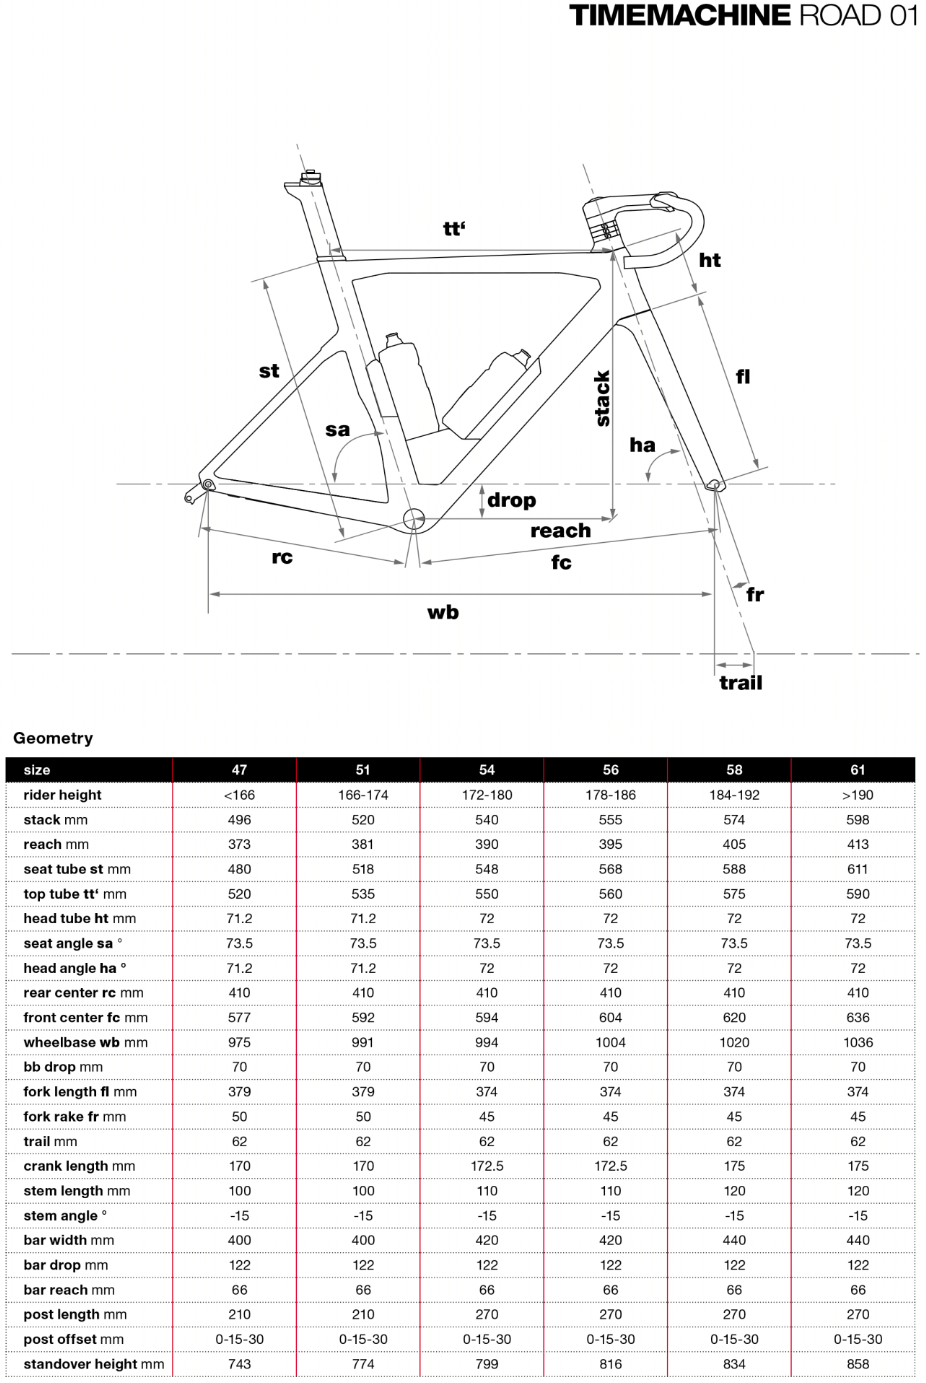 BMC Timemachine Road 01 geometry chart